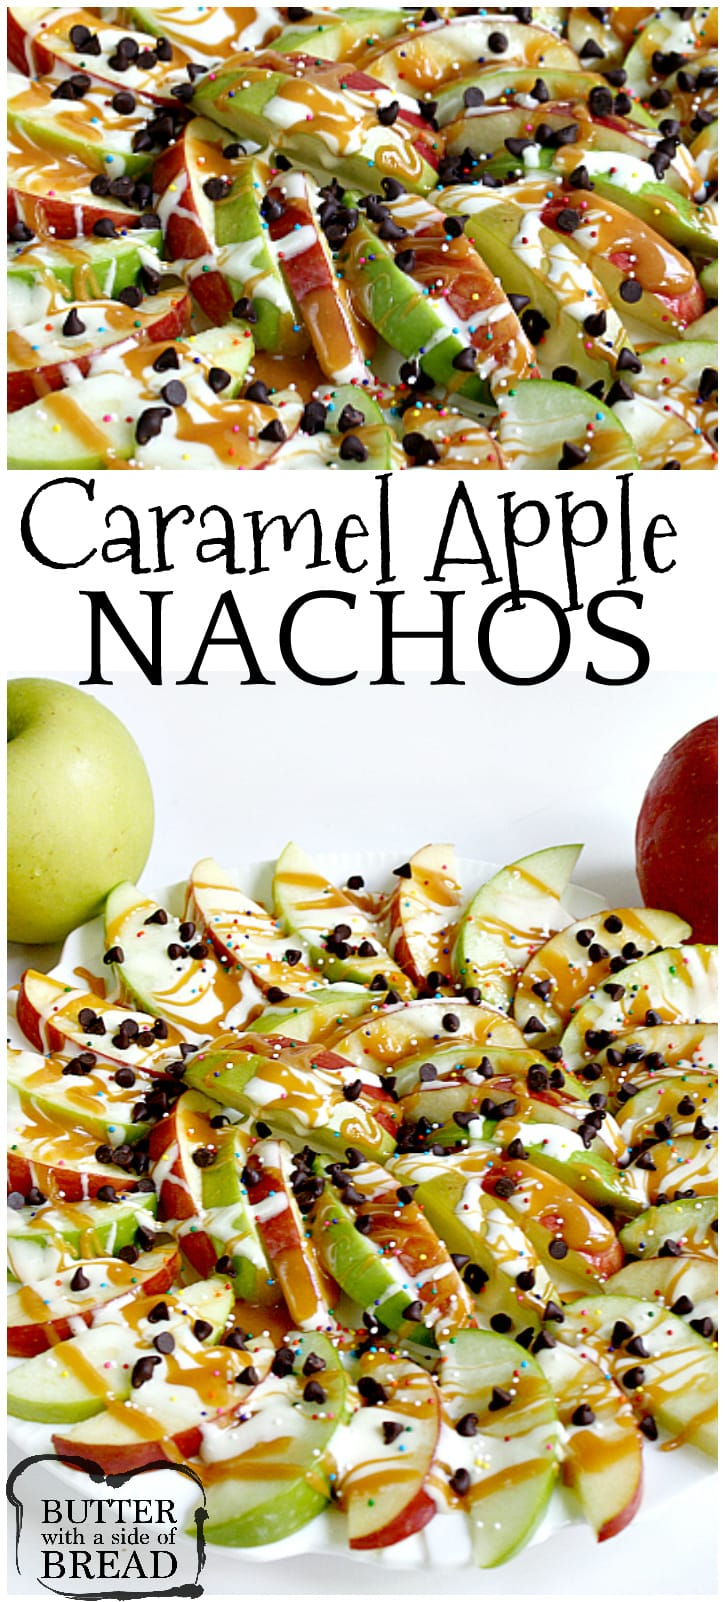 Caramel Apple Nachos are easily made by topping sliced apples with caramel, melted marshmallows, chocolate chips and sprinkles!